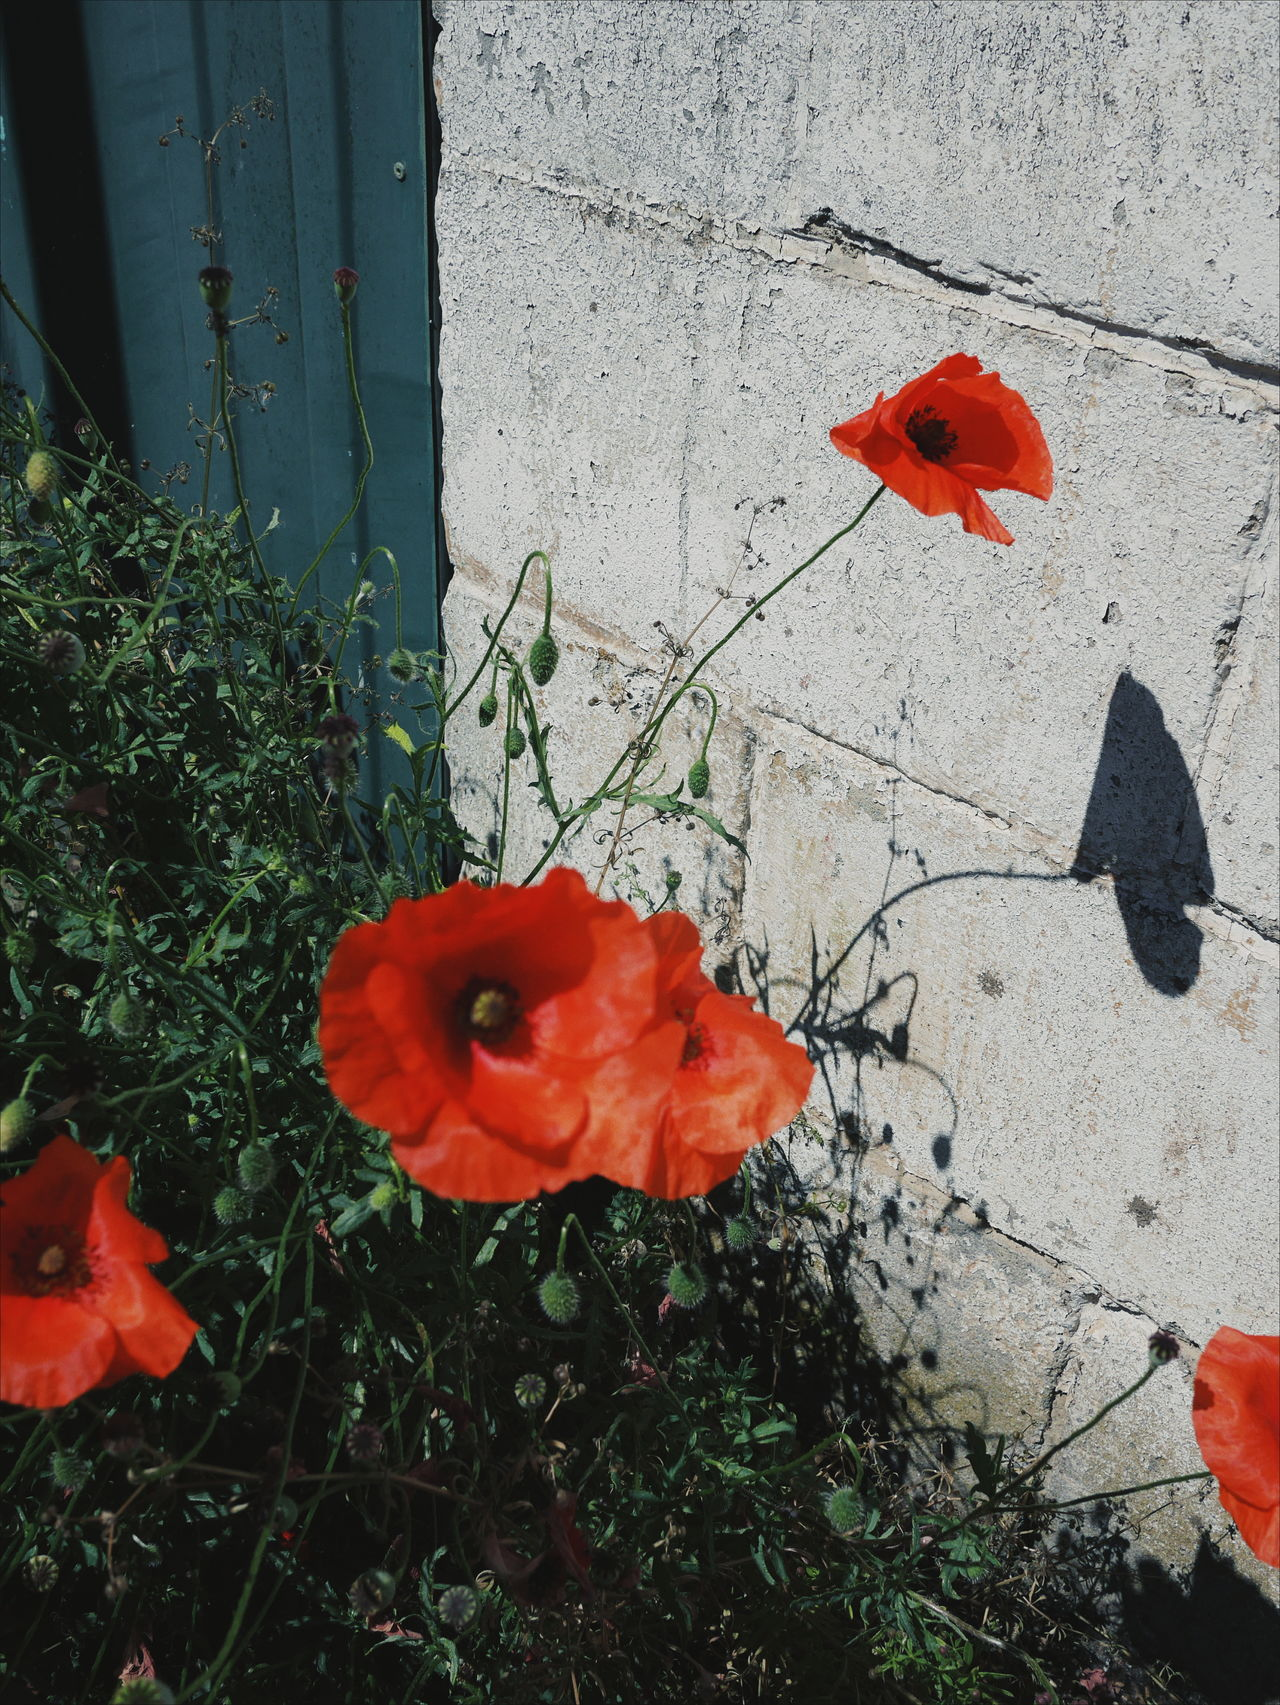 Red Poppy Leaf Outdoors Flower Day High Angle View Nature No People Sunlight Growth Fragility Beauty In Nature Close-up Flower Head